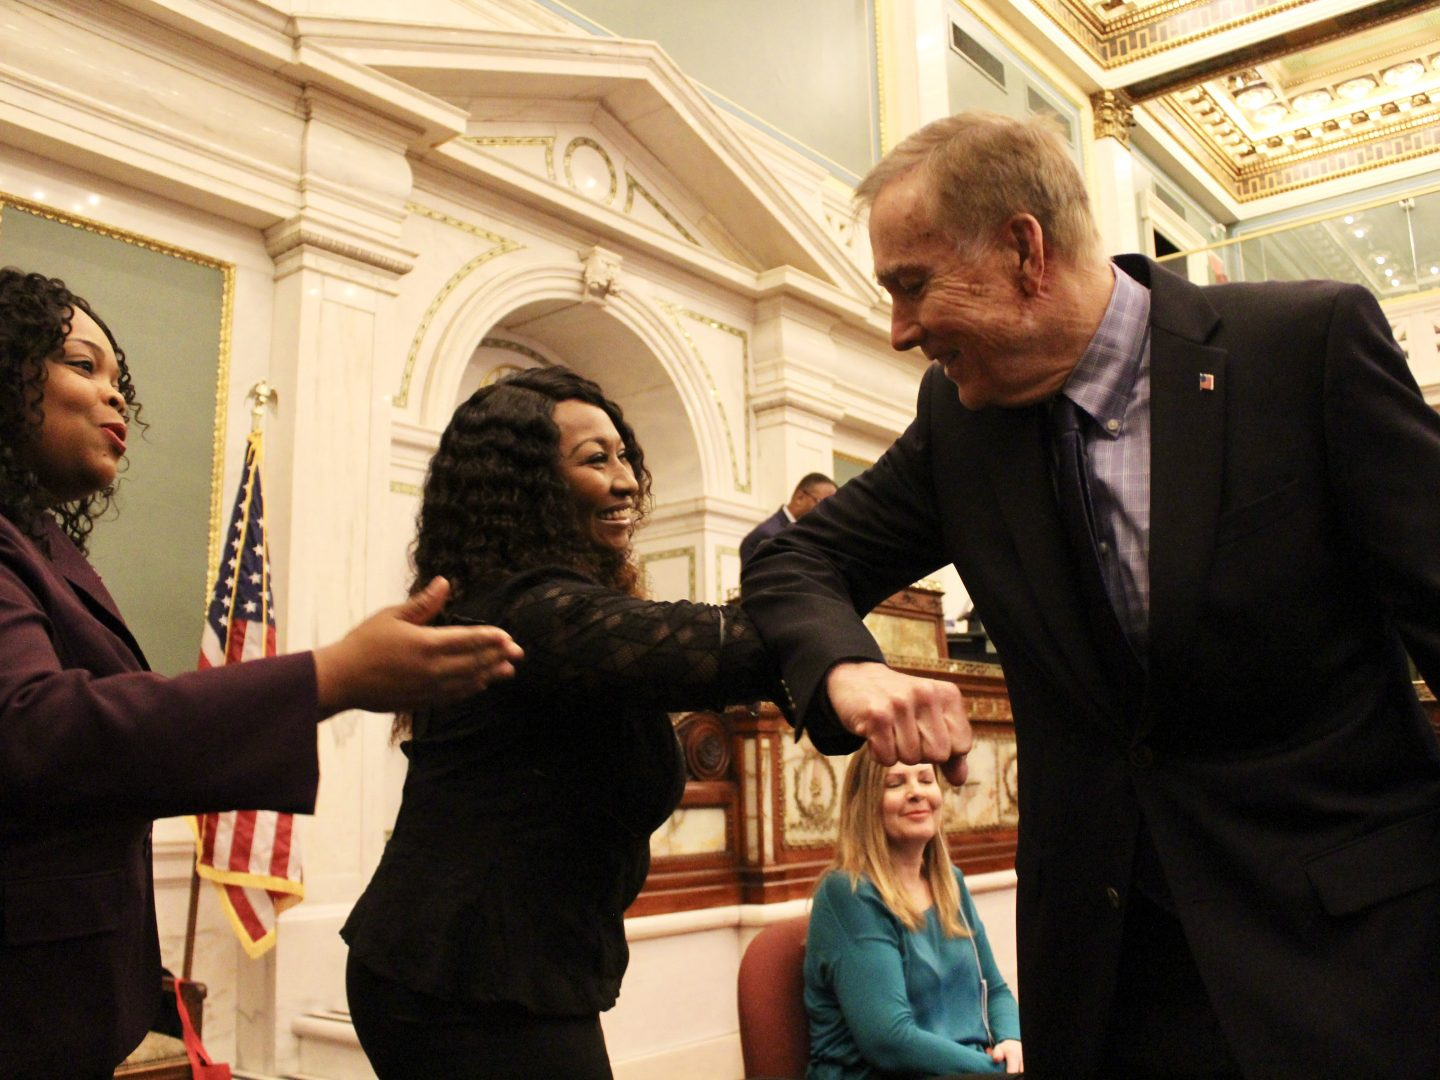 Councilmember Brian O'Neill greeted Minister Reshaun Carlton with an elbow bump.